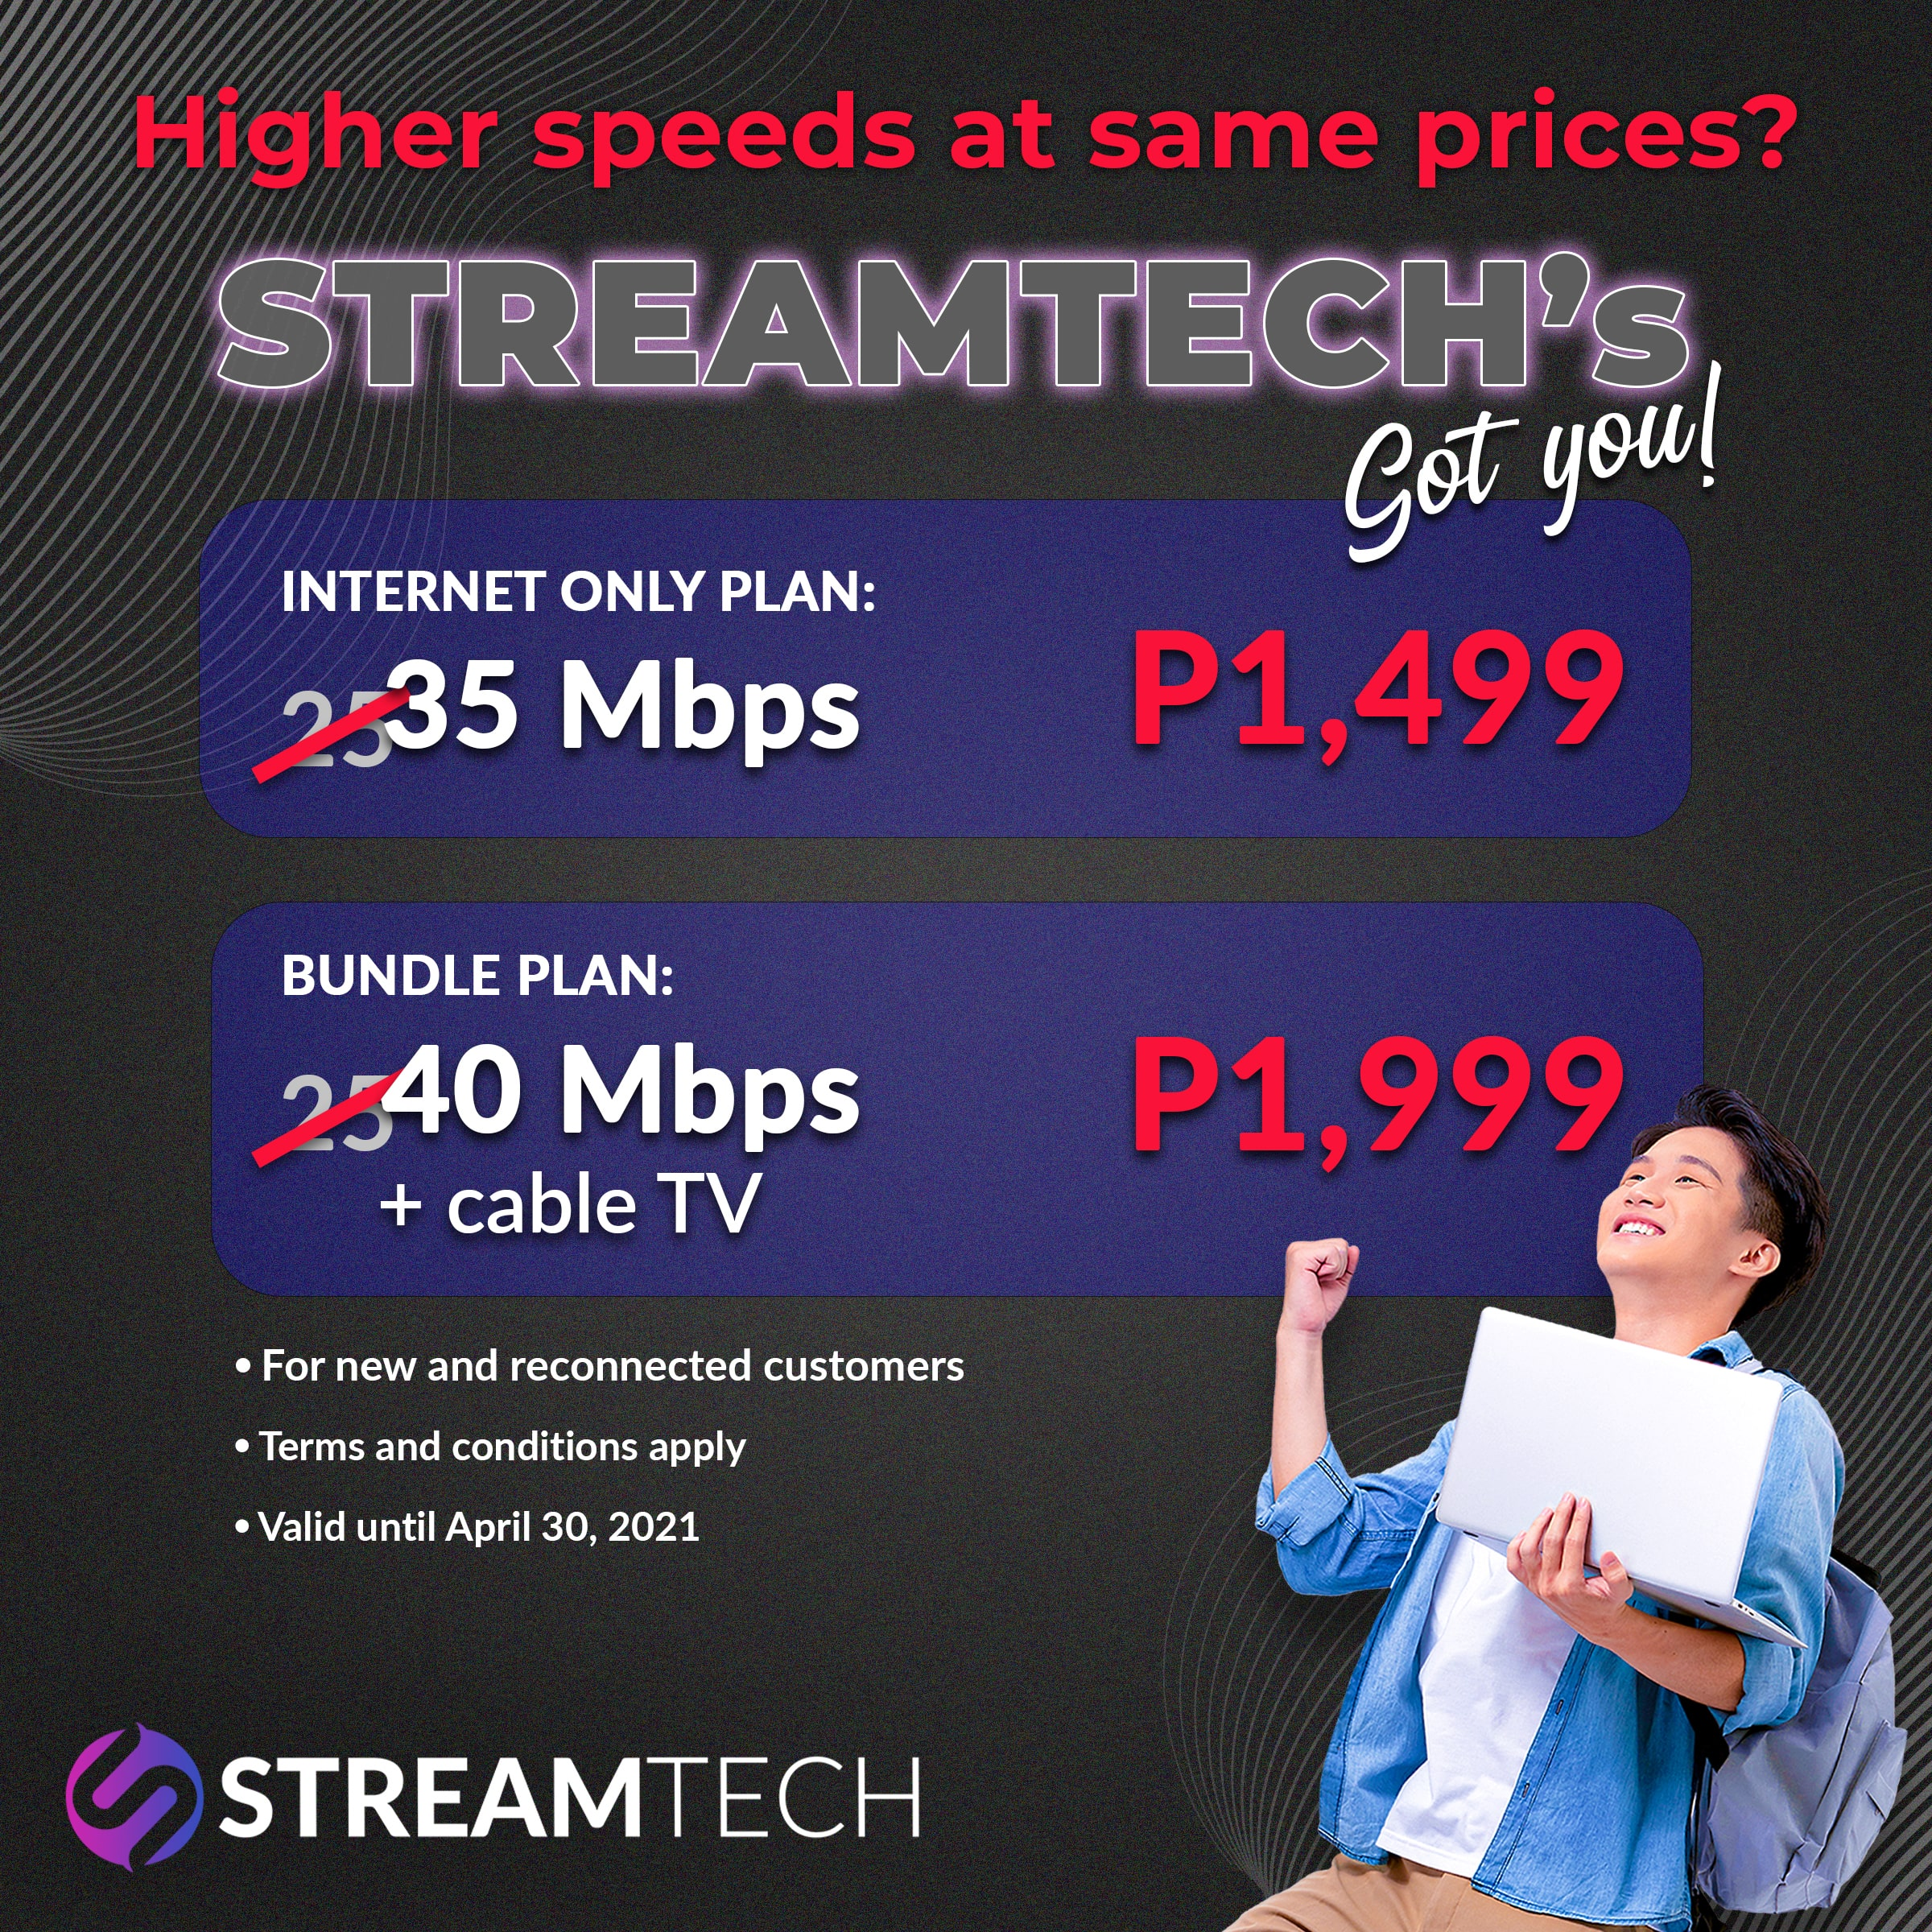 Streamtech Upgraded Fiber Internet Speed Promo for Off Net